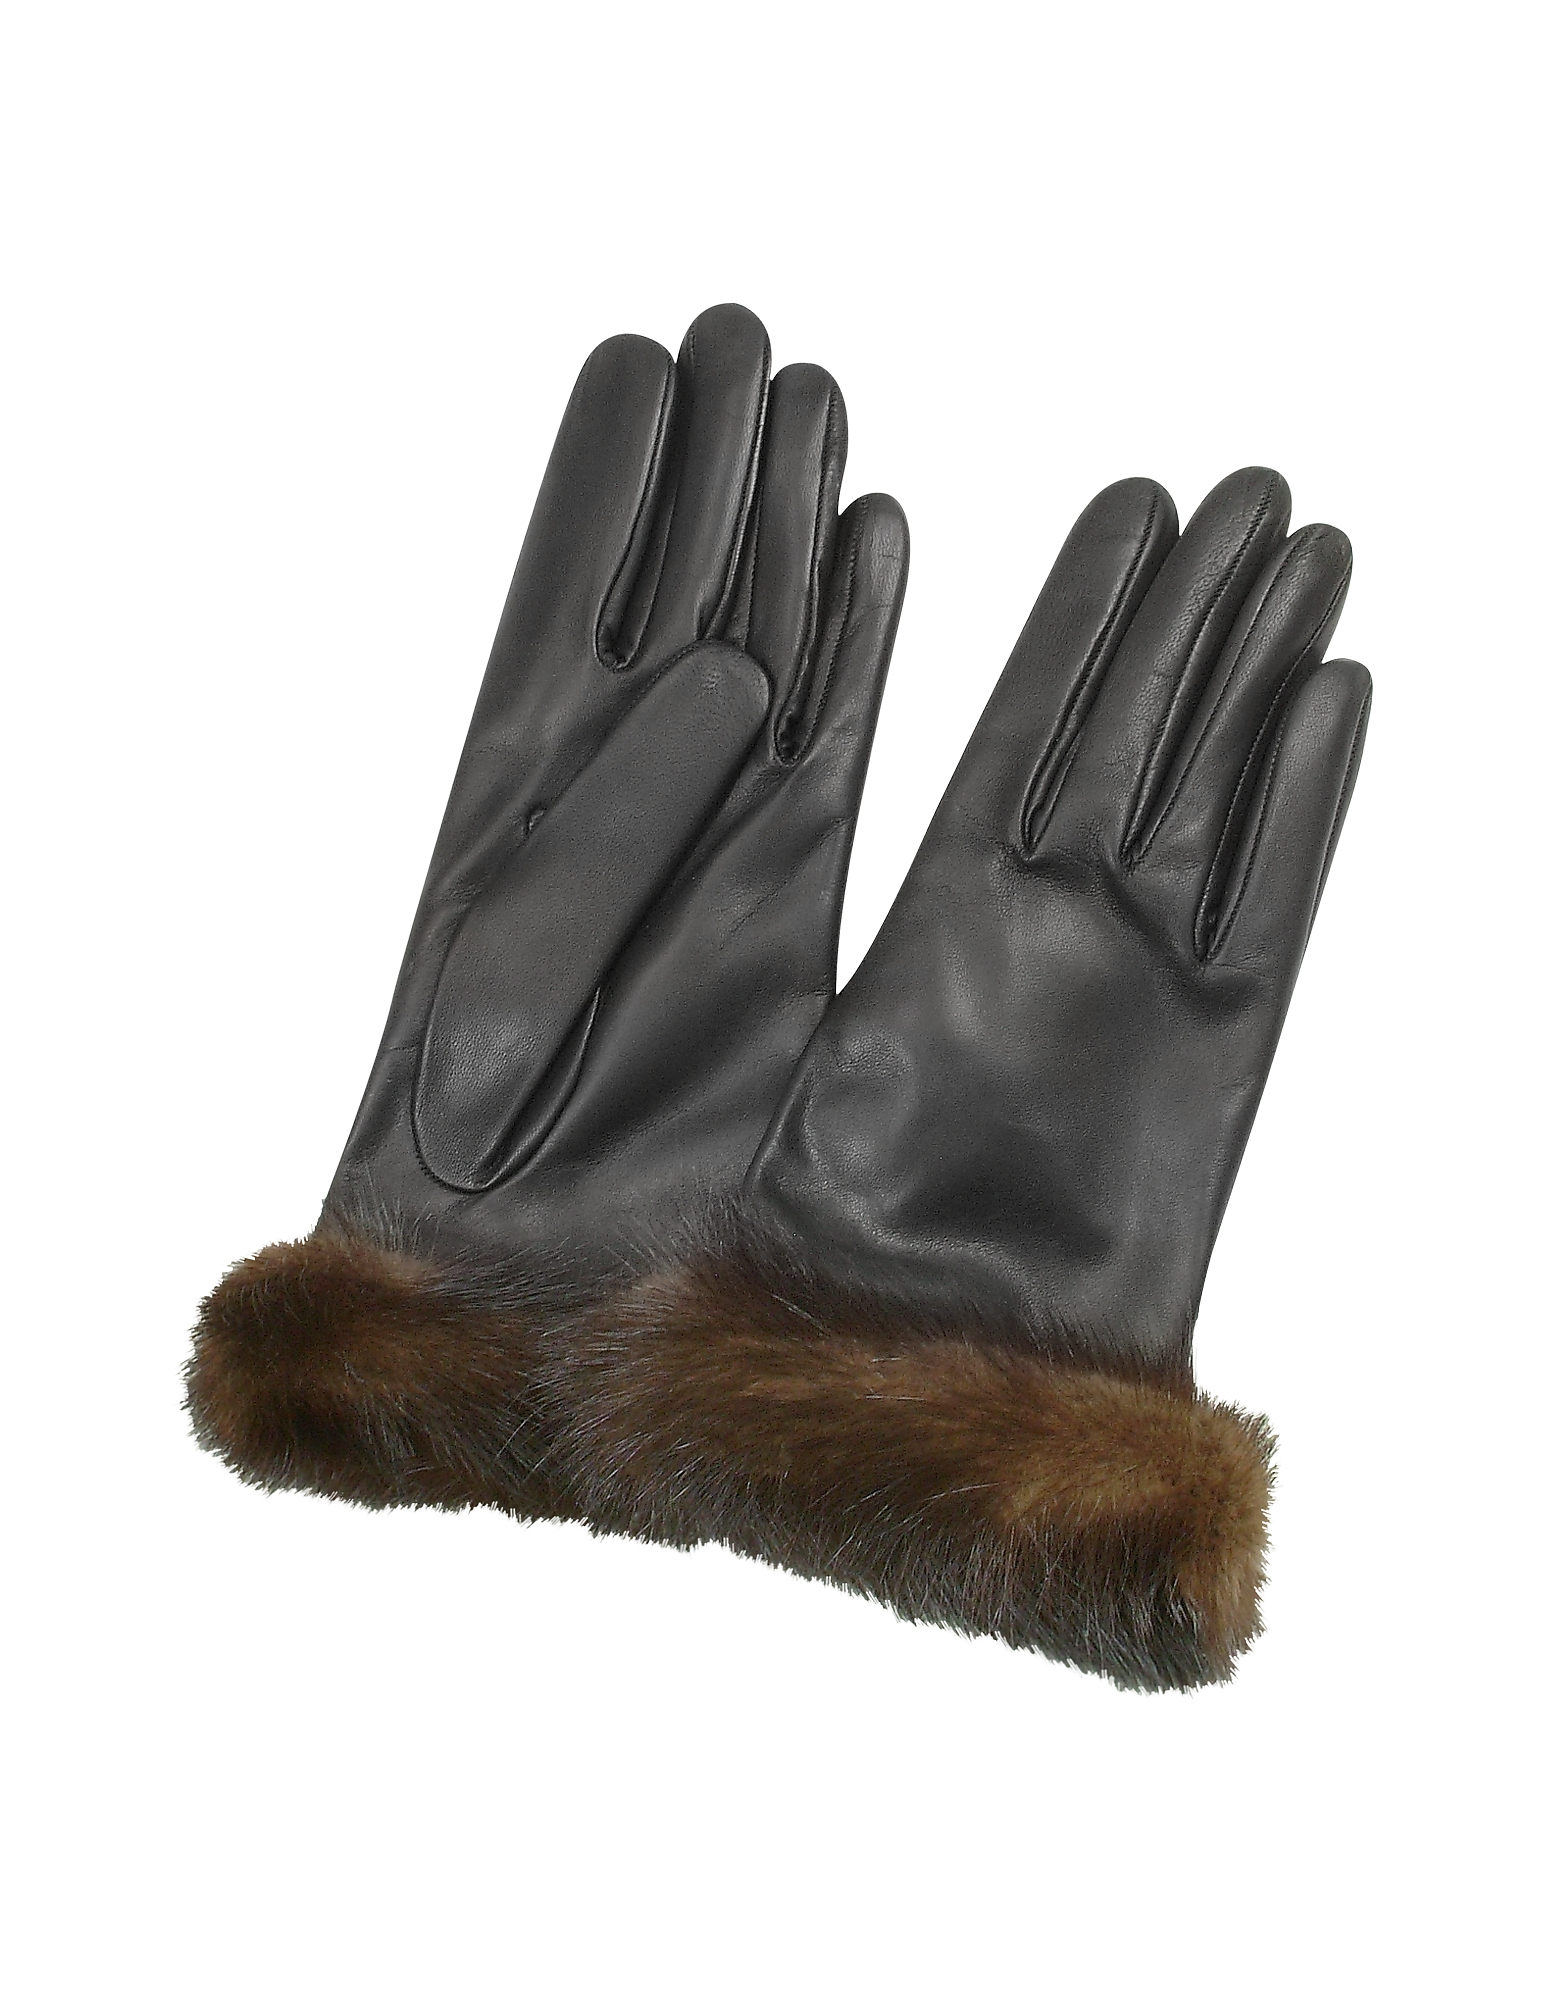 Forzieri Women's Gloves, Women's Black Italian Nappa Leather Gloves